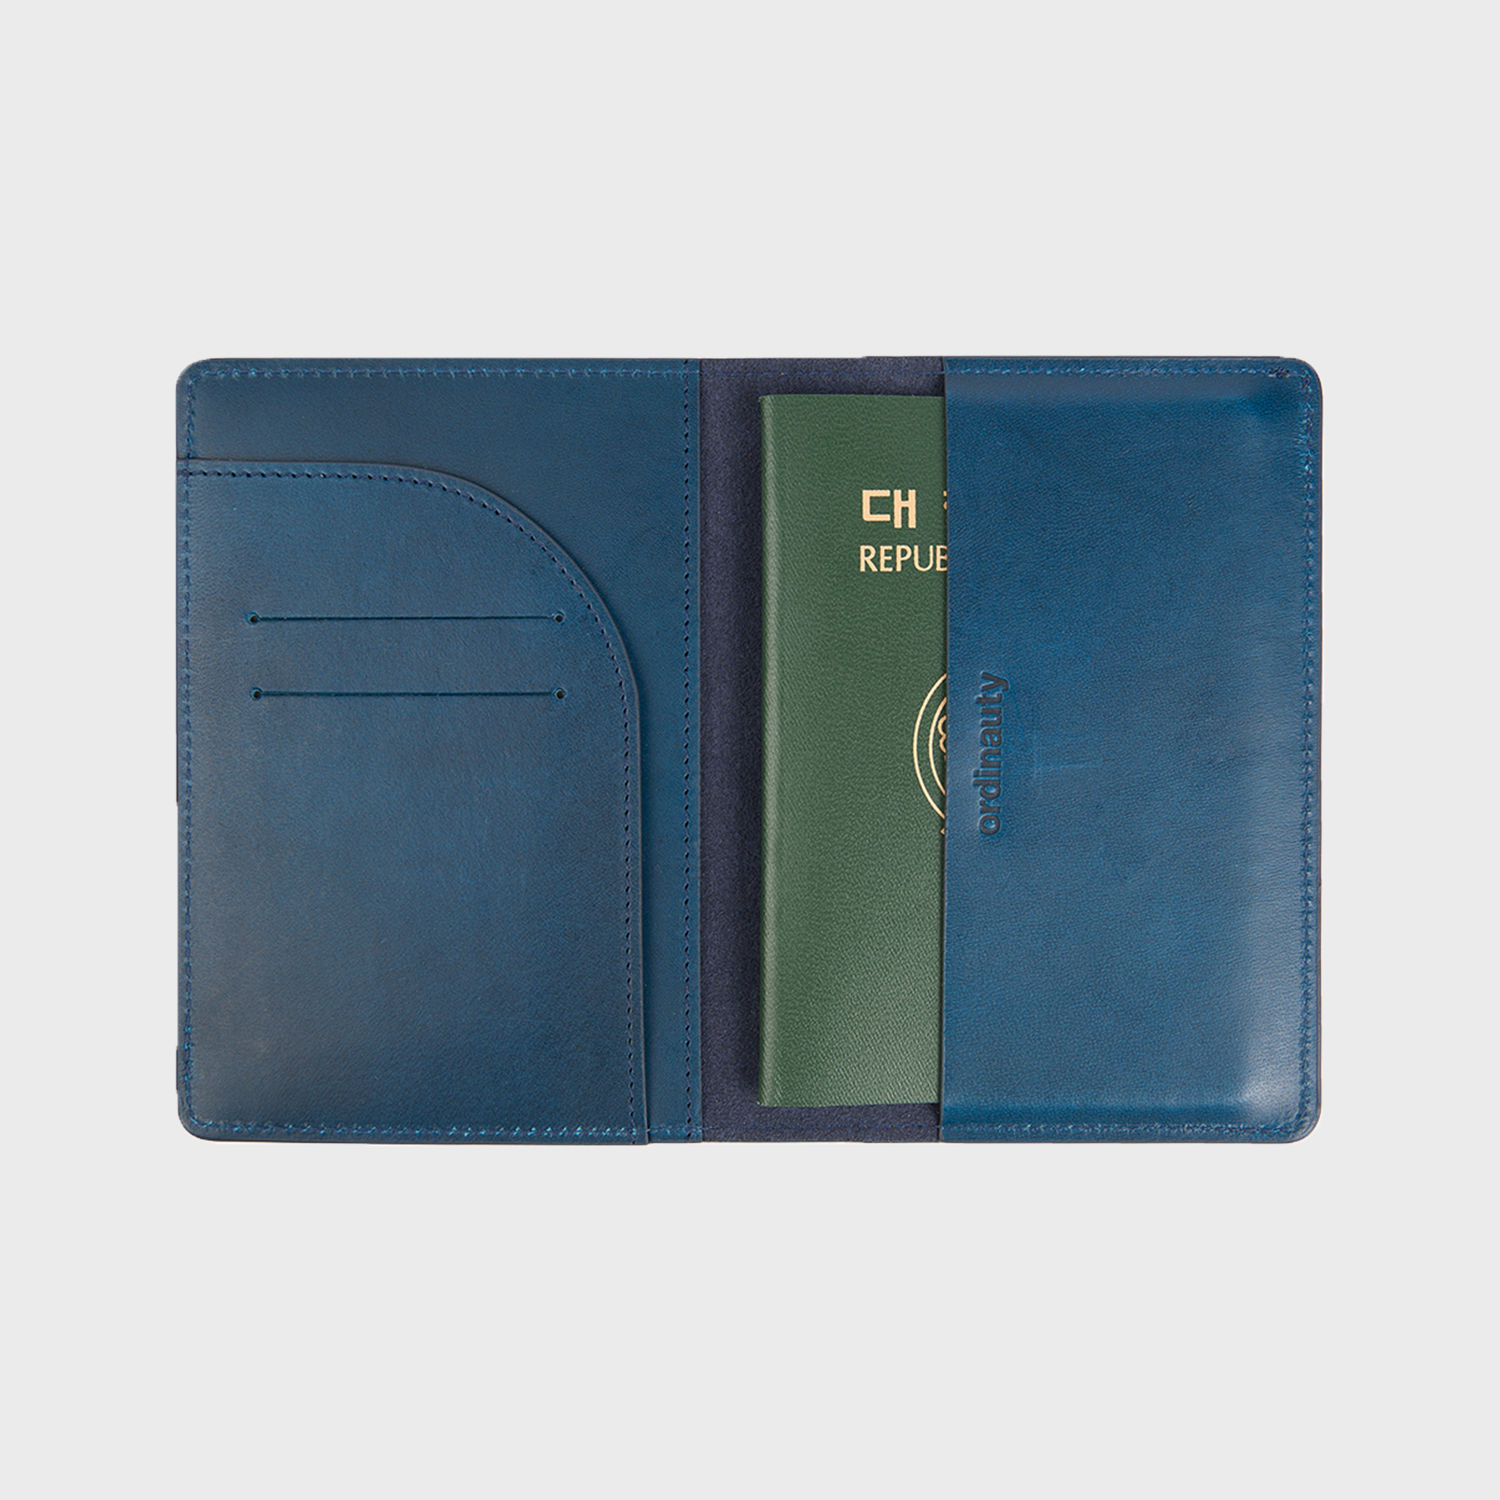 [오디너티]All in 1 PASSPORT NAVY (Buttero, Italy vegetable leather)